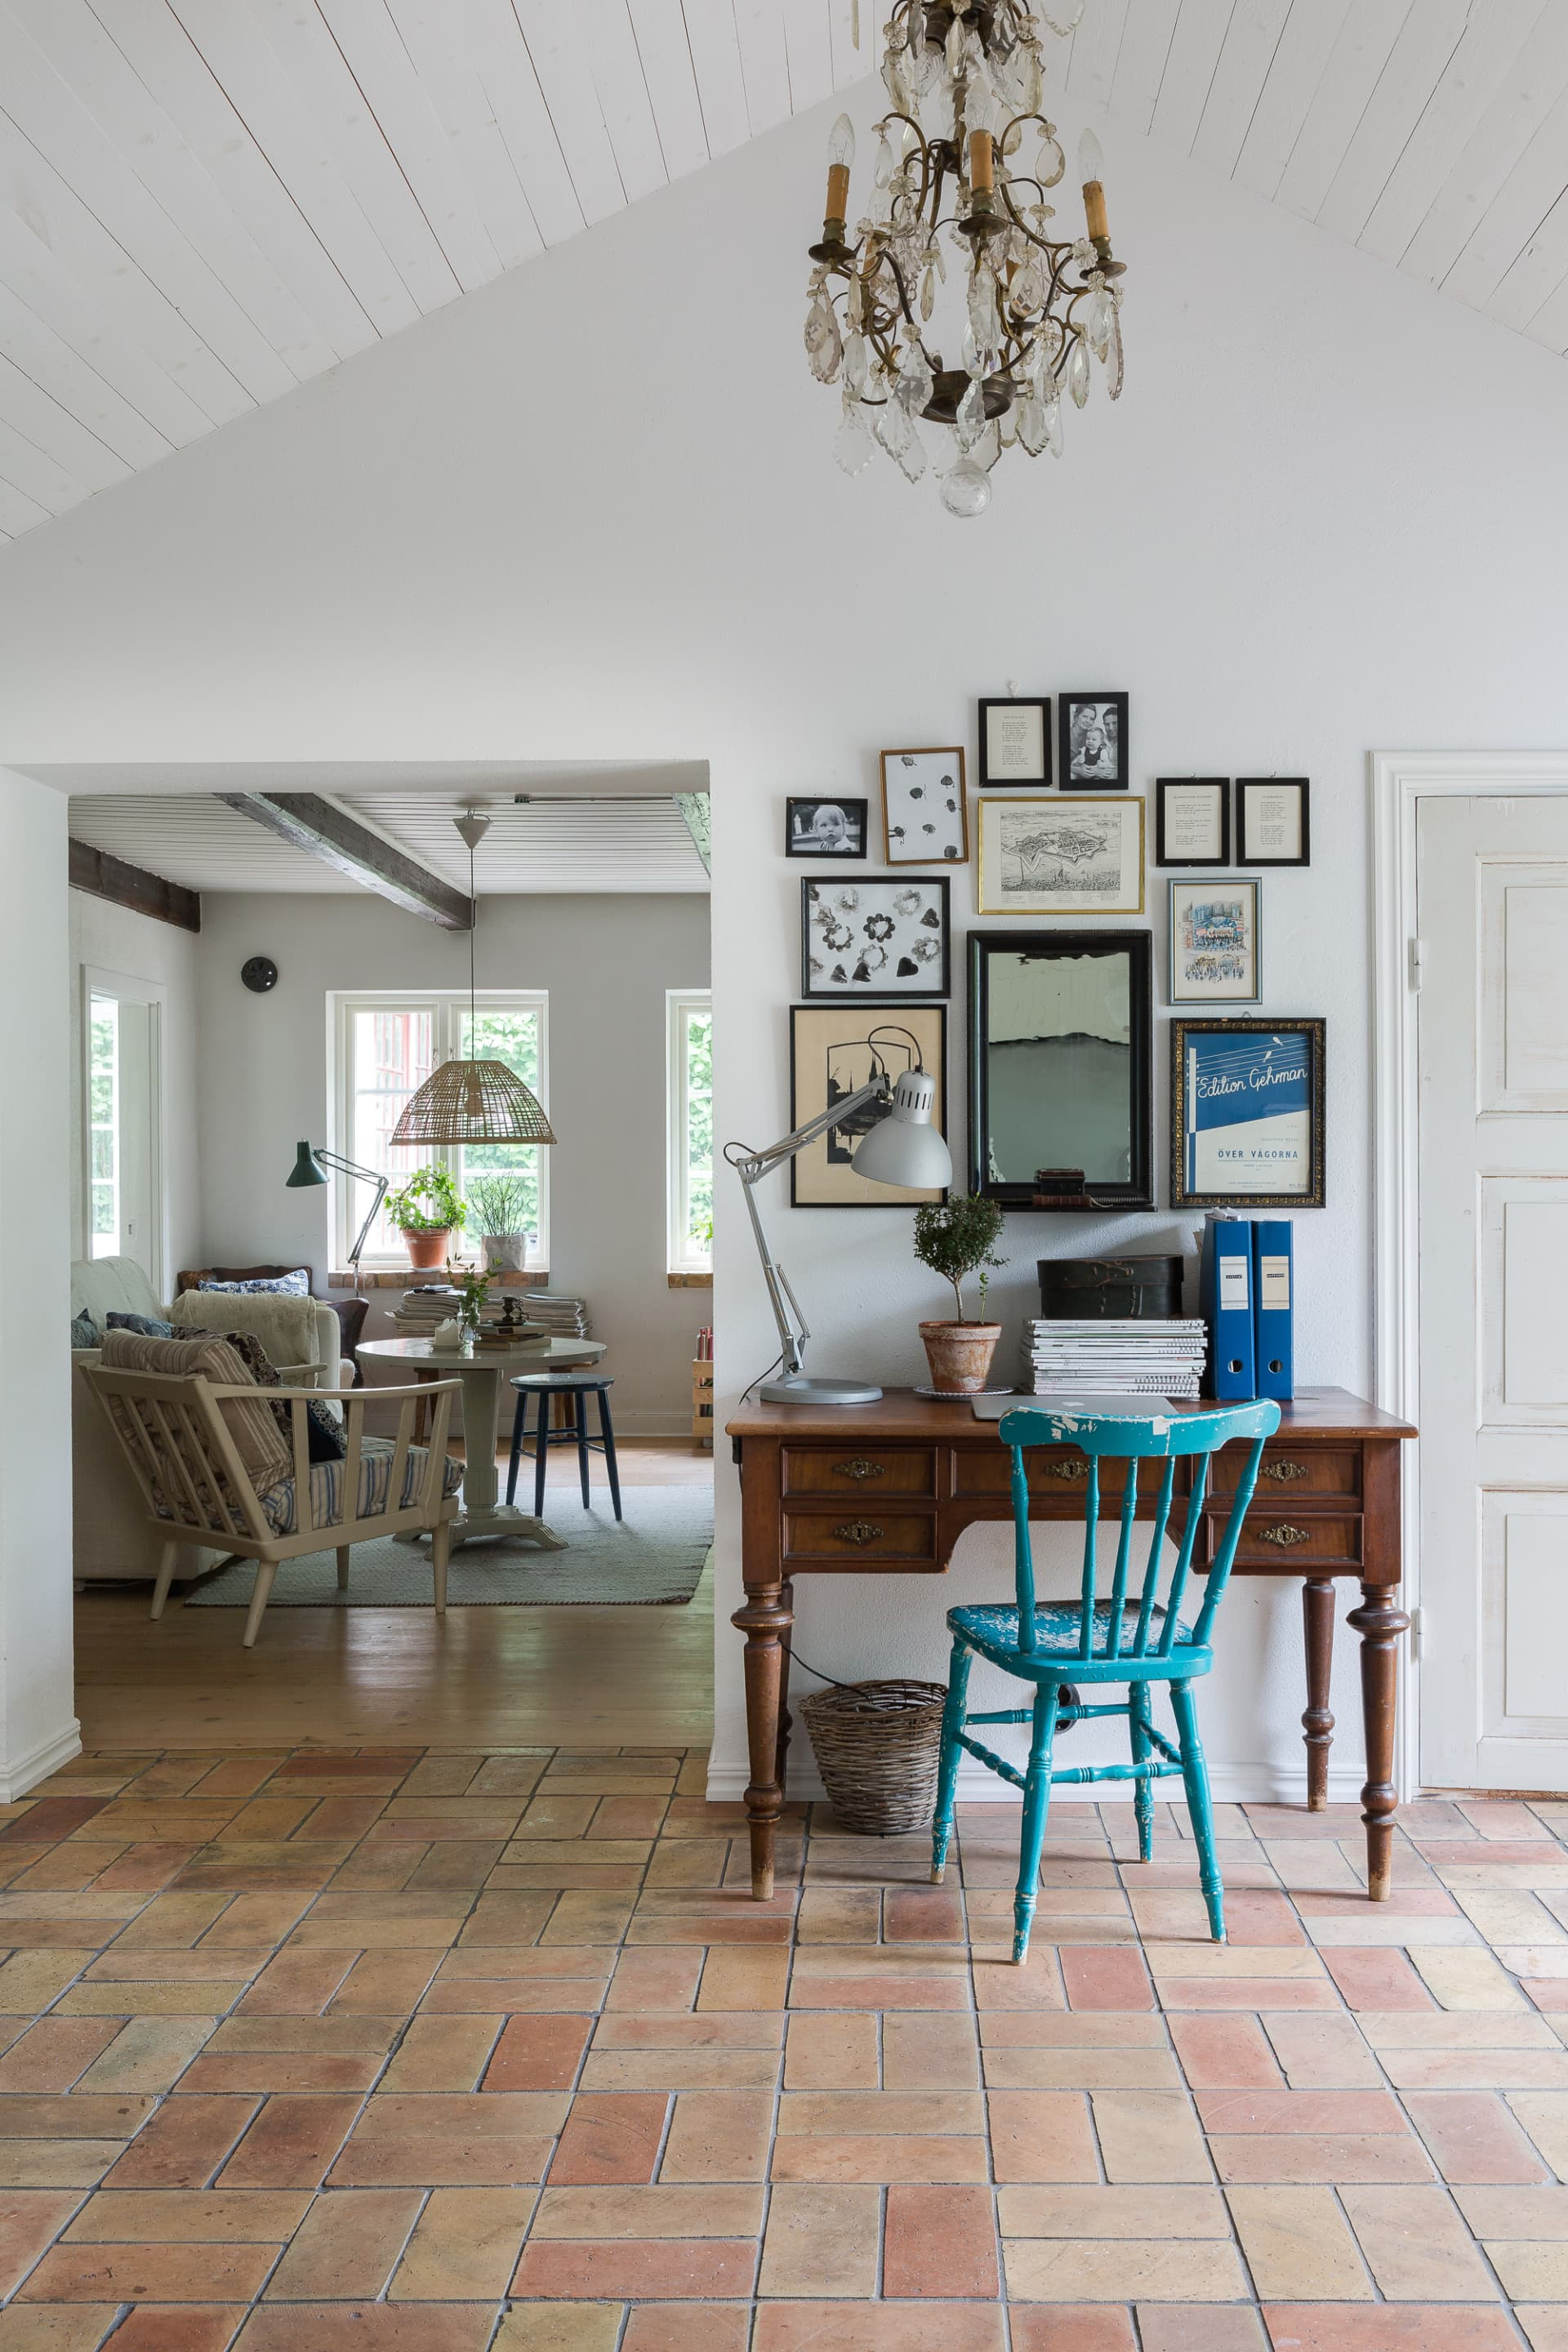 The wonderful floor in the front hallway that ties the two buildings together is made from hand-hammered tile from Skåne. The desk was bought at an auction while the chair and the light were bought at a flea market.